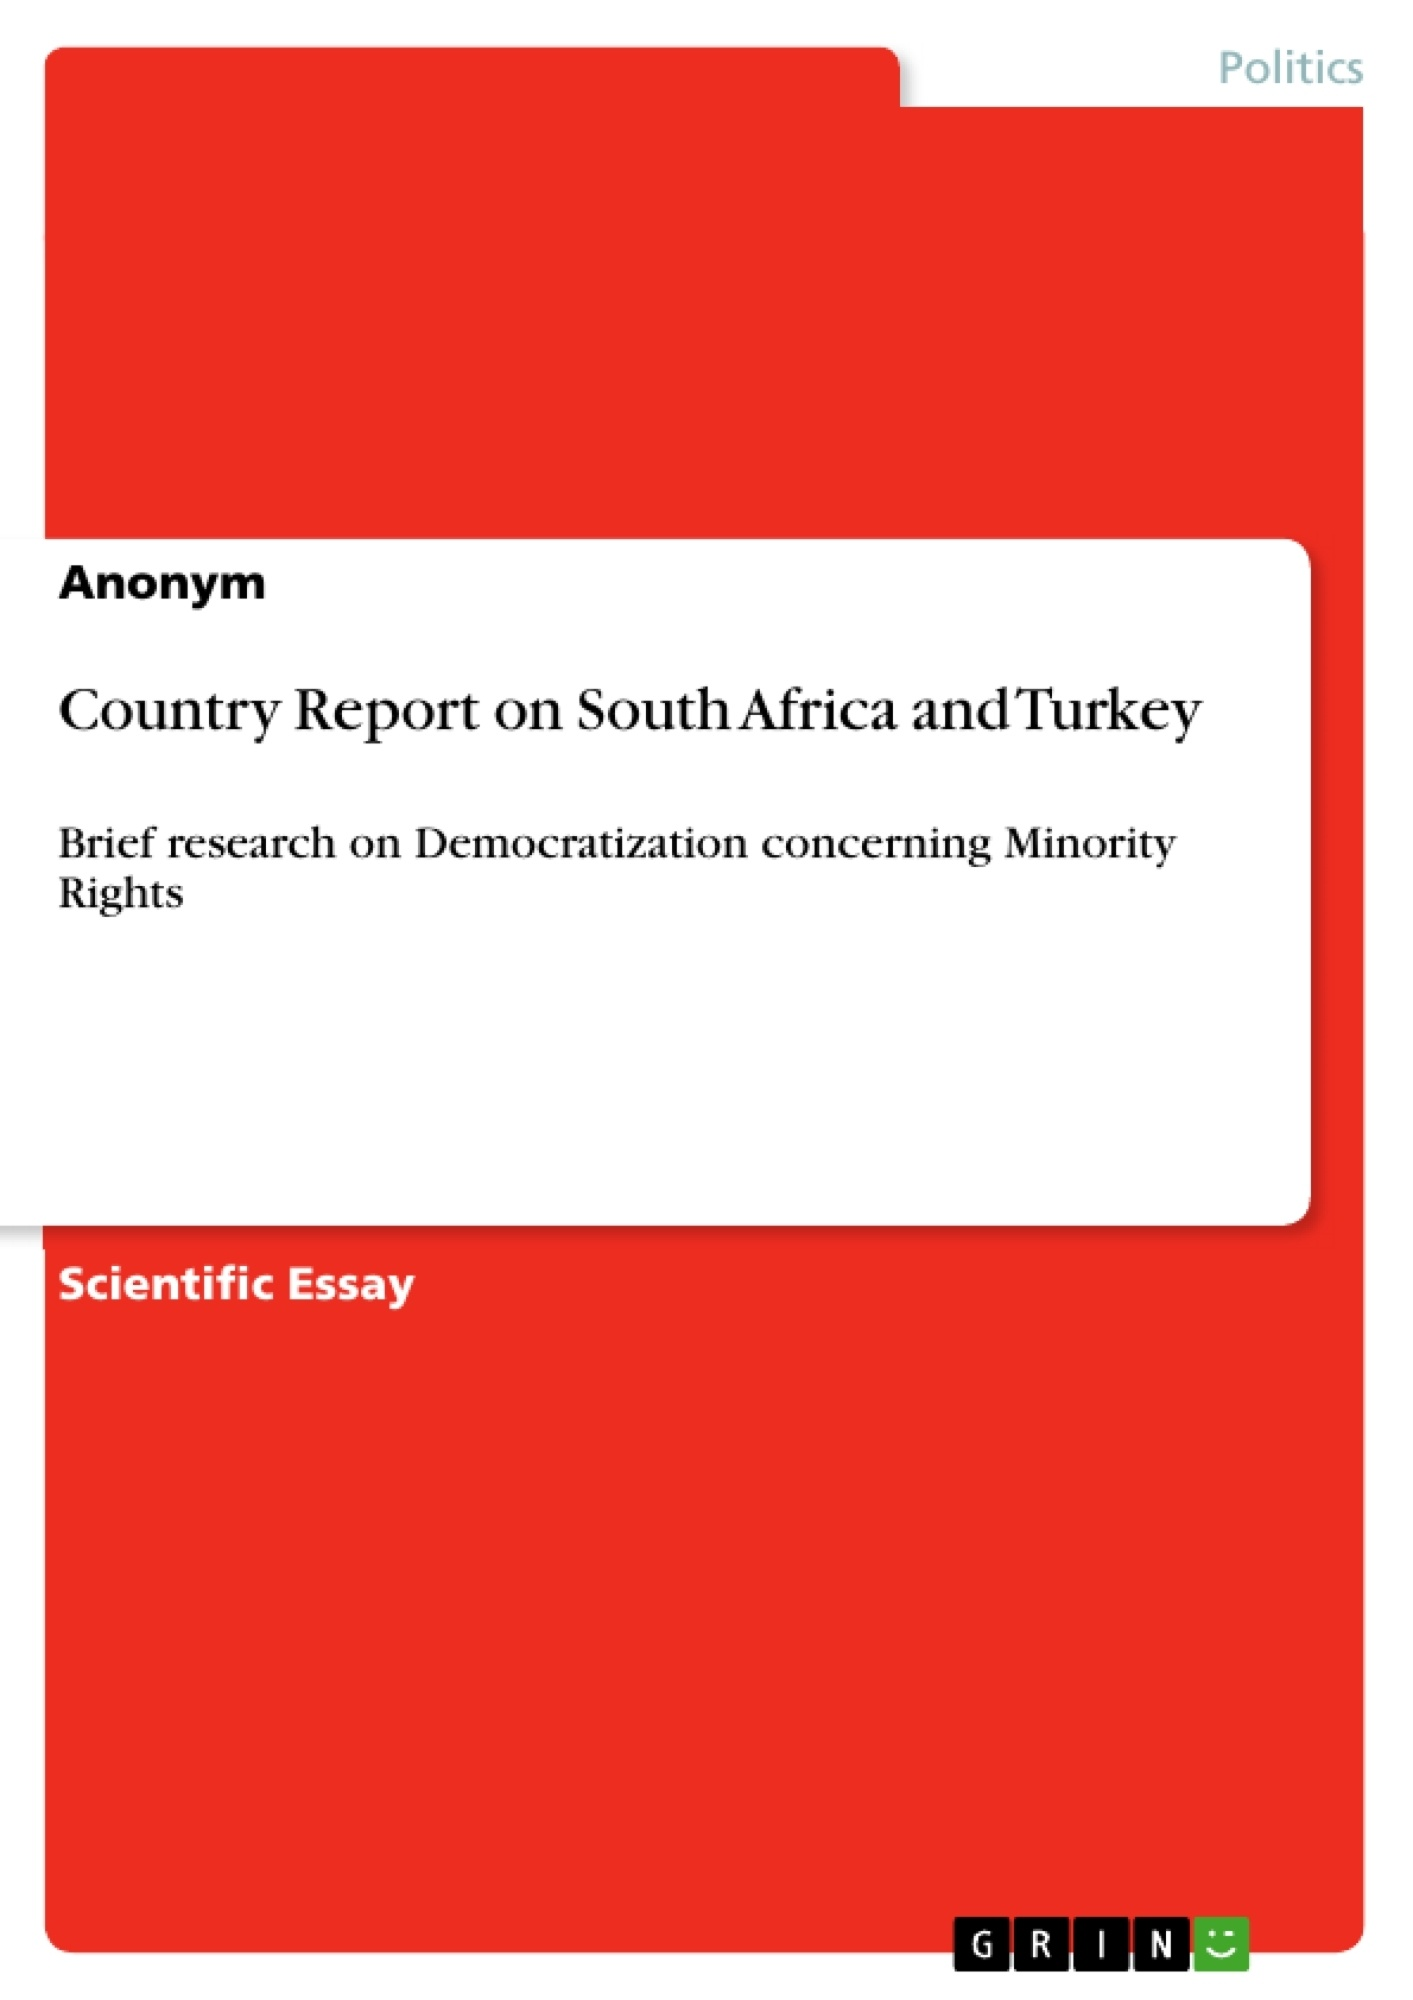 Title: Country Report on South Africa and Turkey